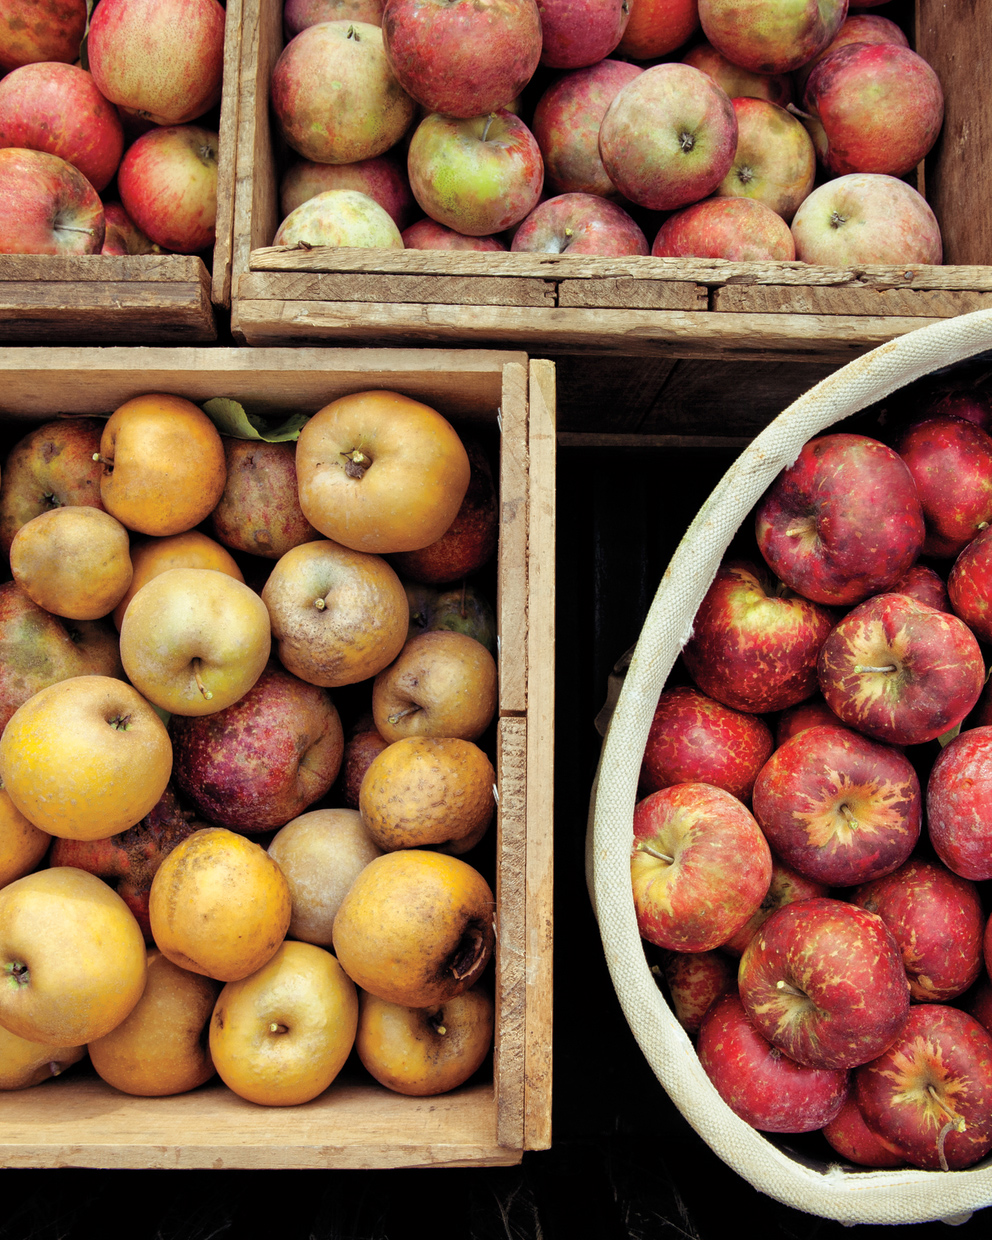 variety of apples in boxes